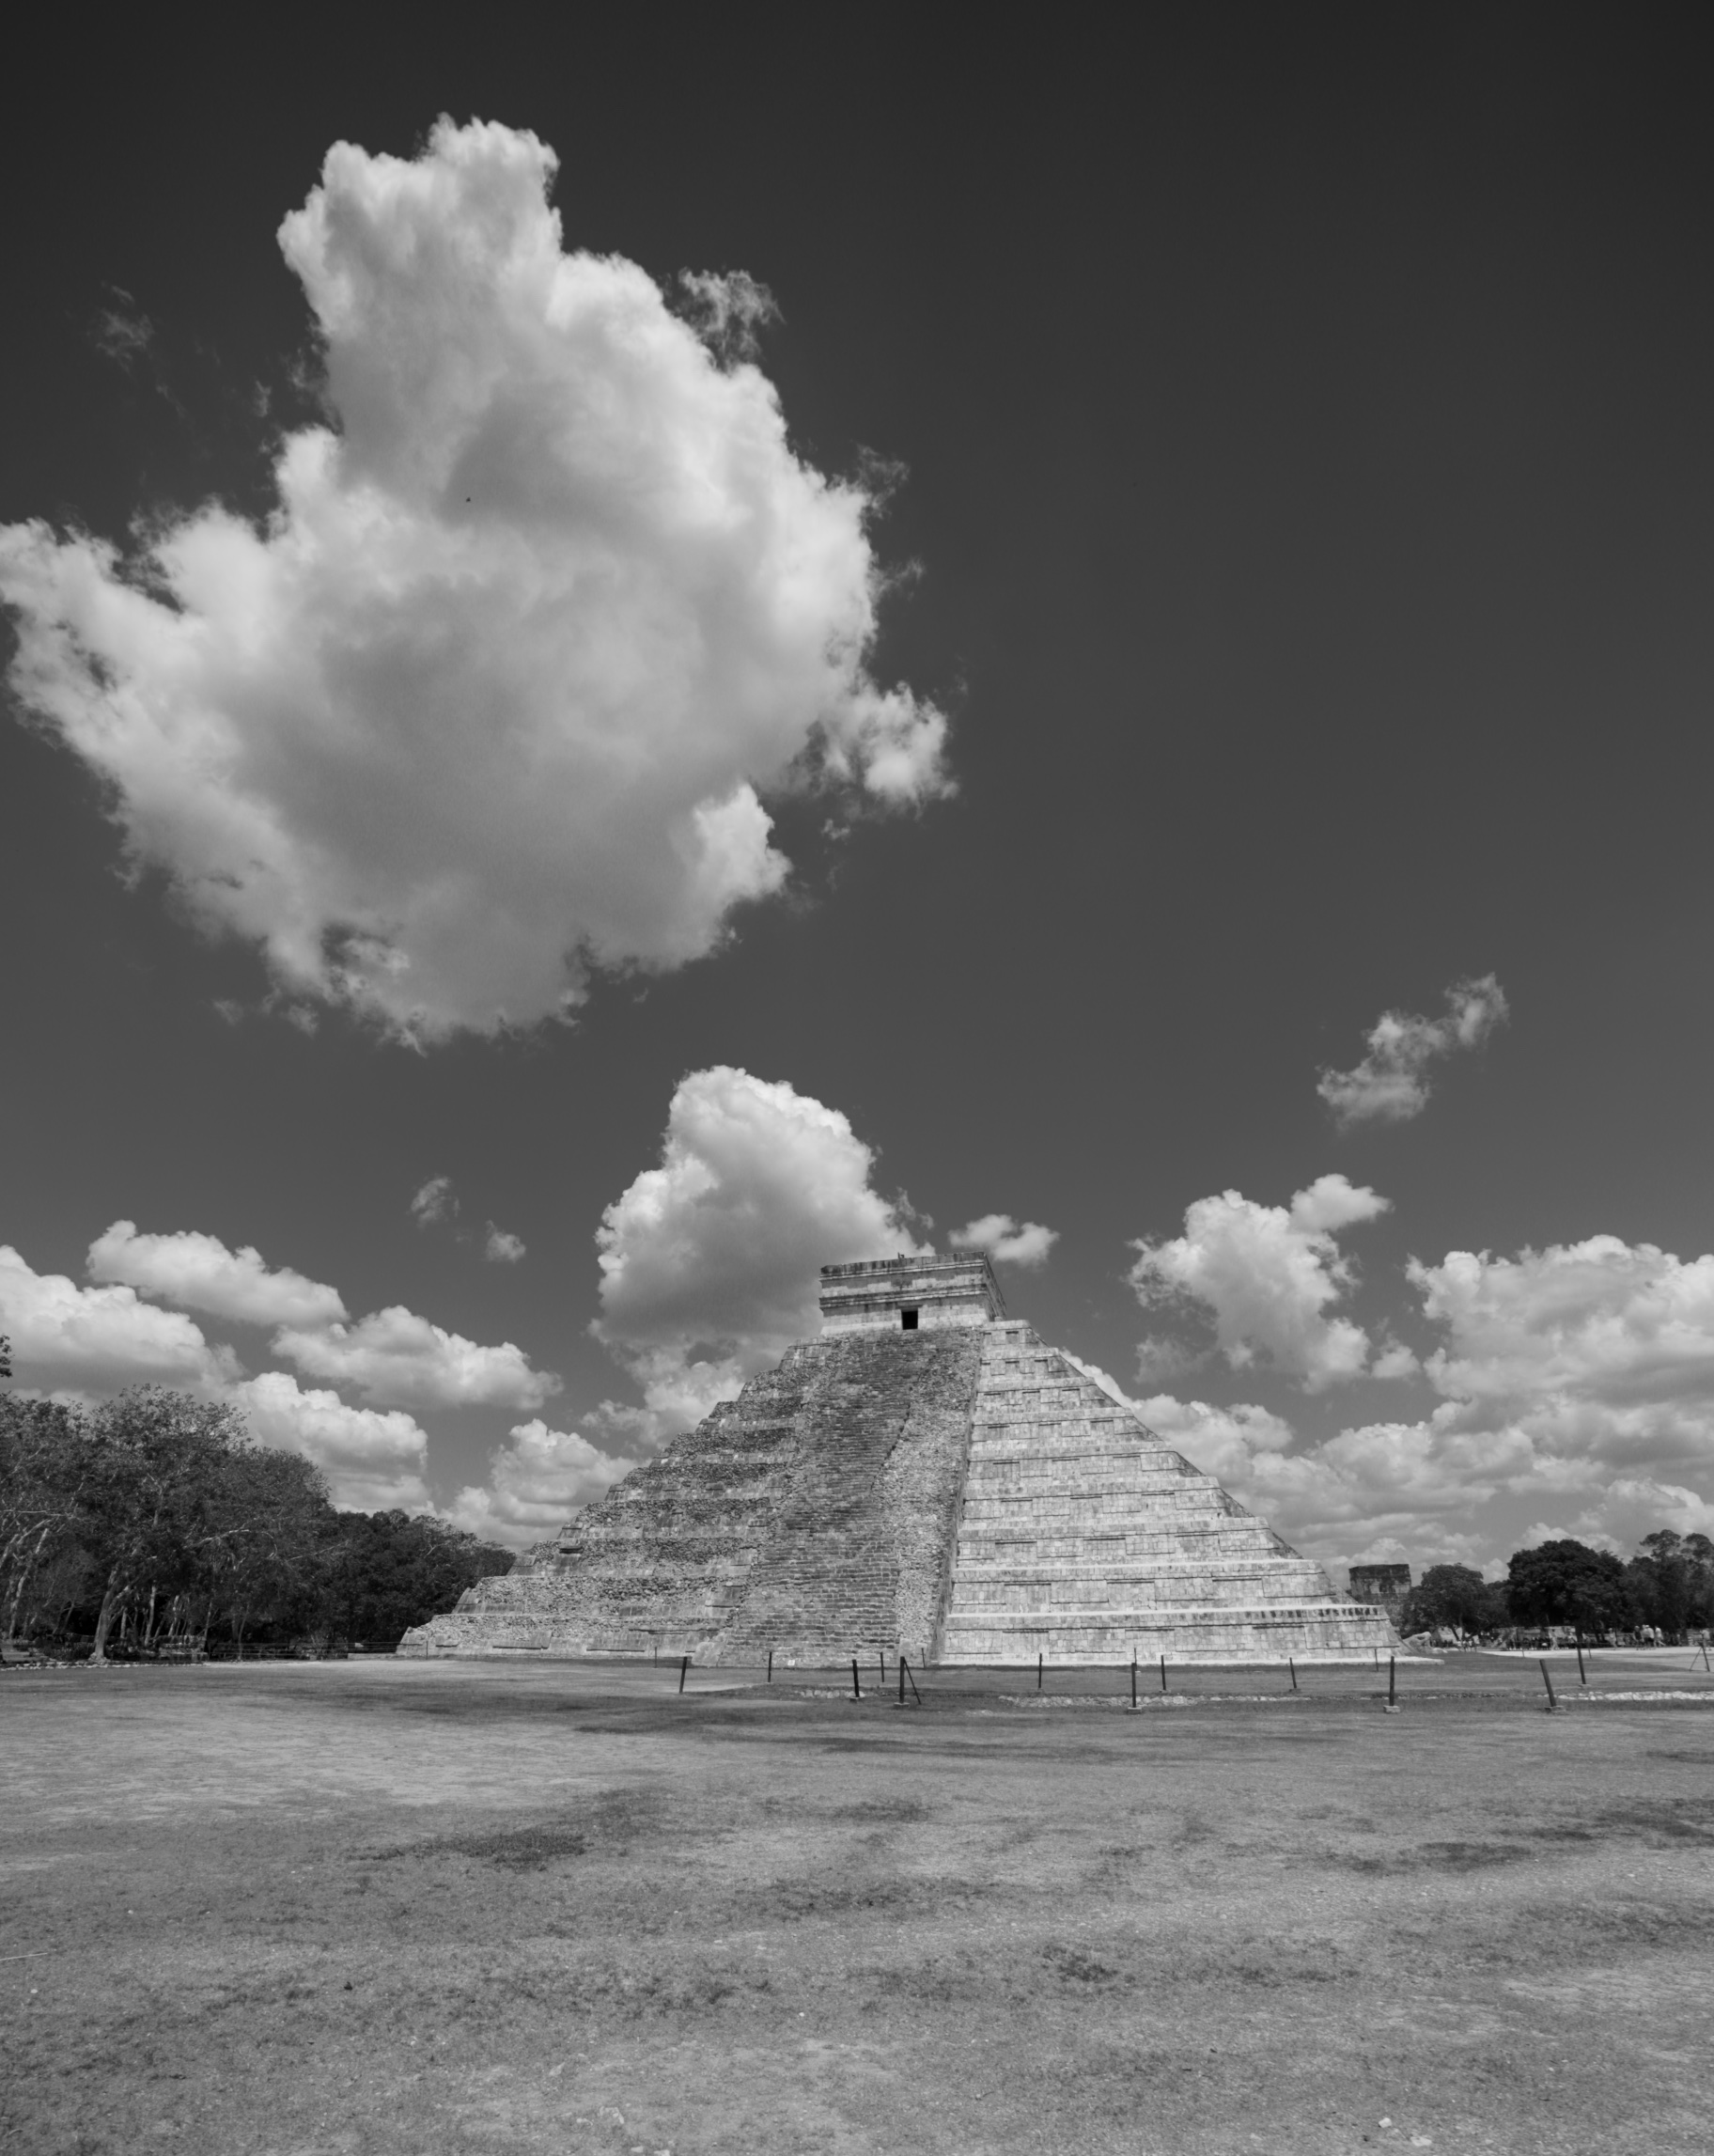 Chichen Itza in black and white photography.